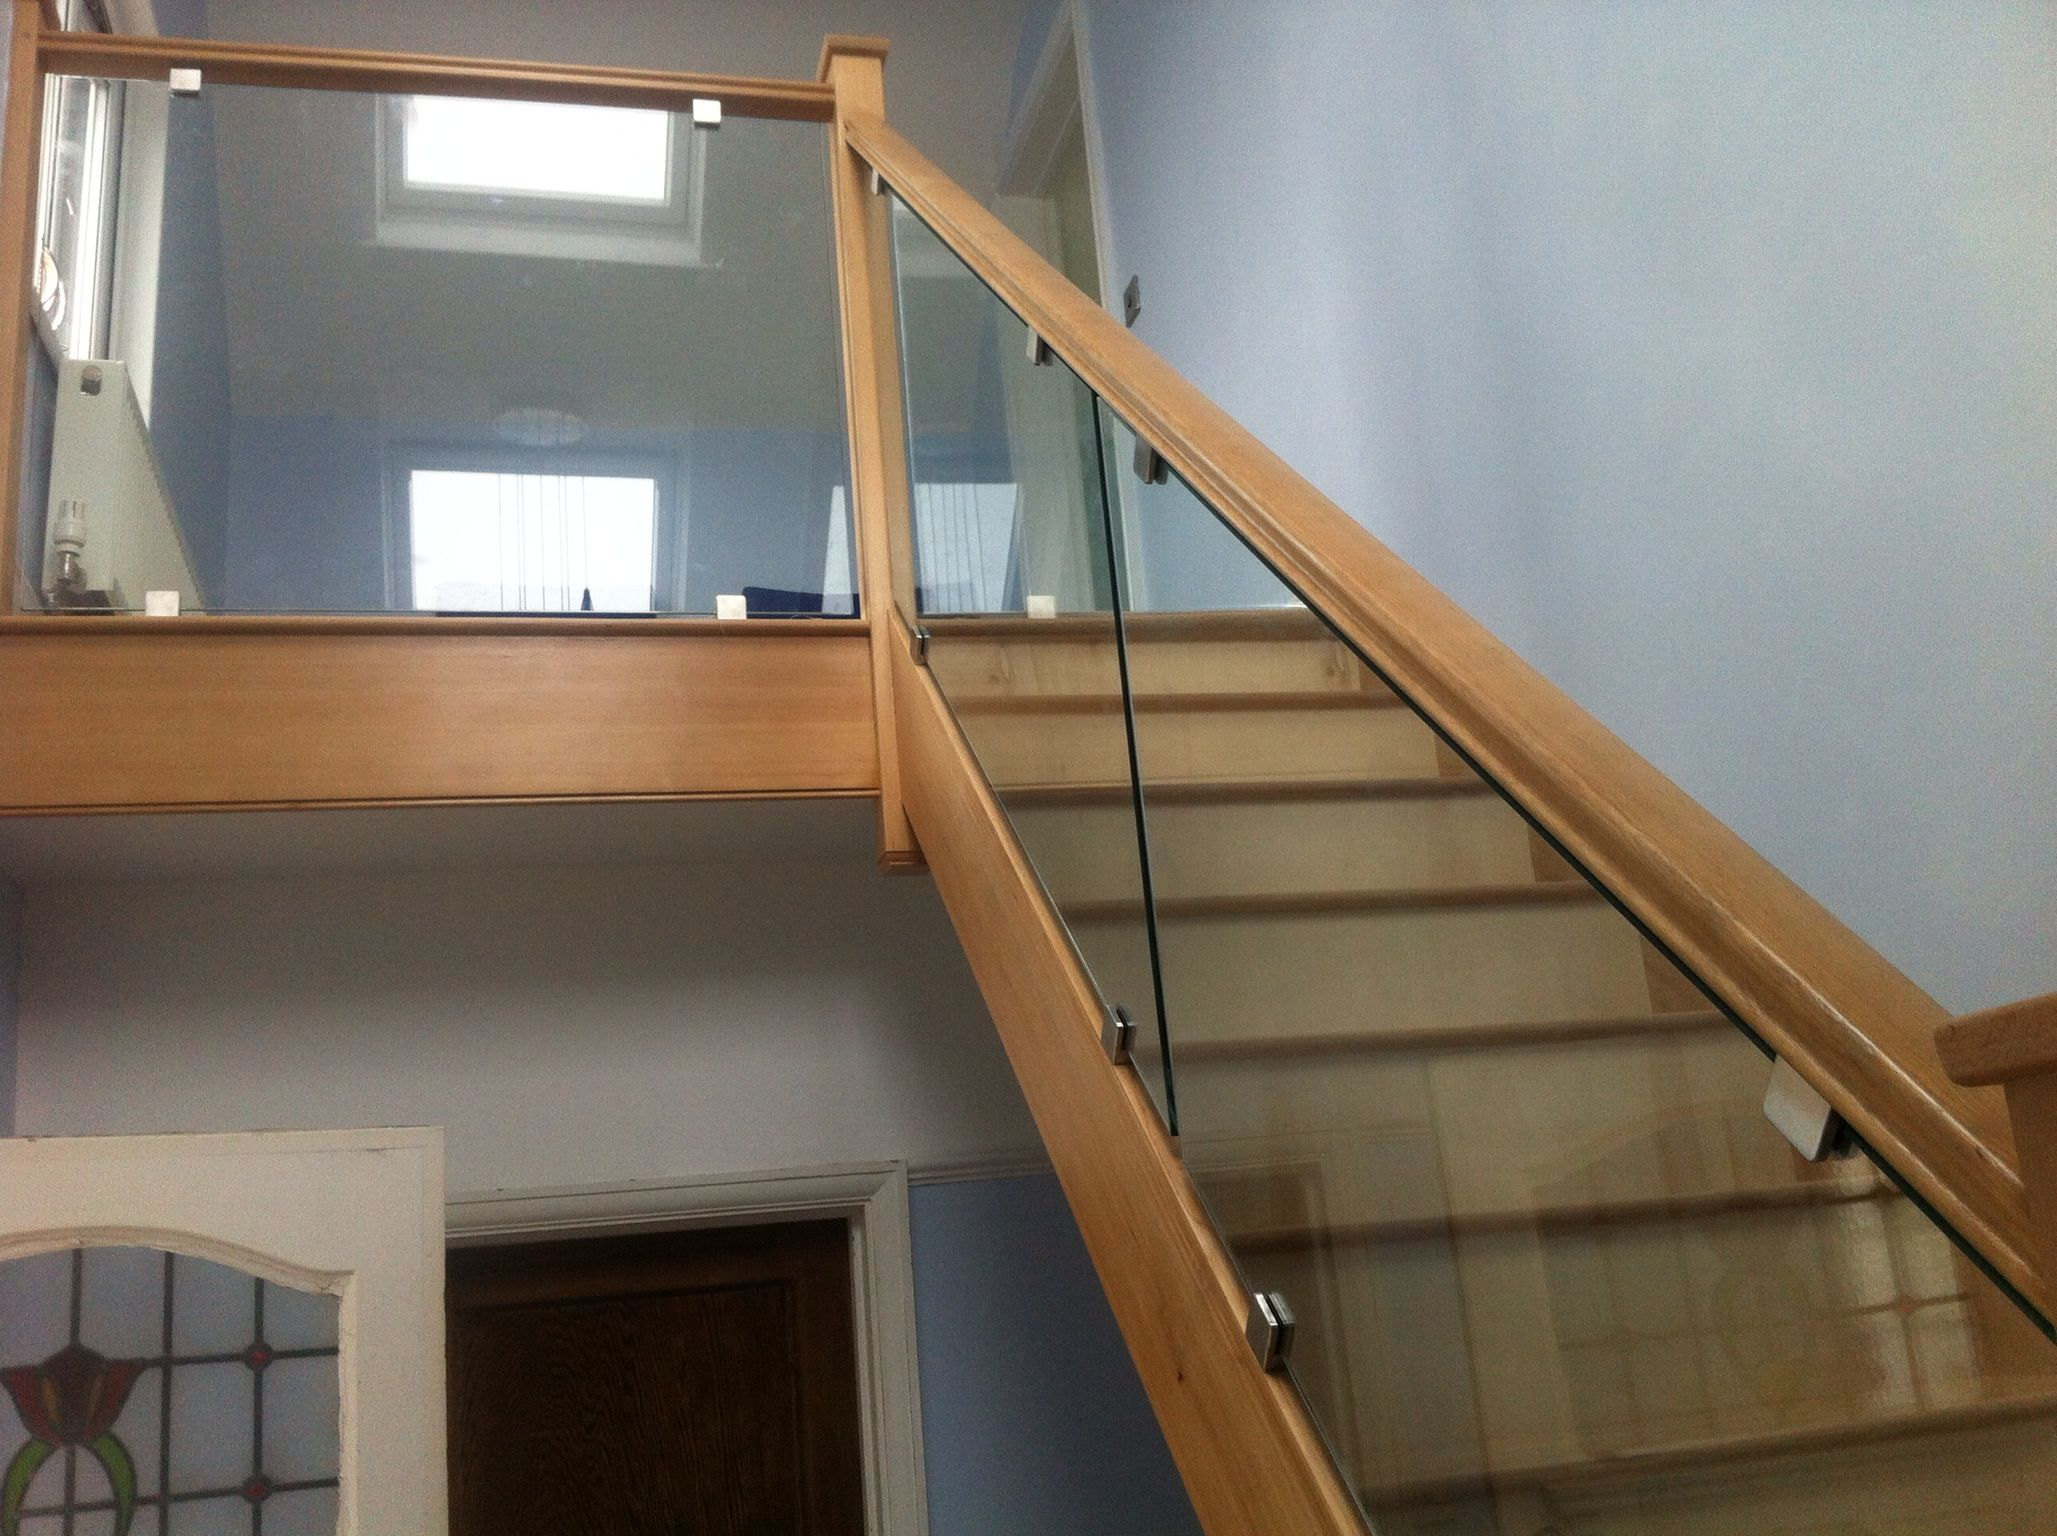 Toughened Safety Glass Balustrades Fixed Into Hardwood Surround With Stainless